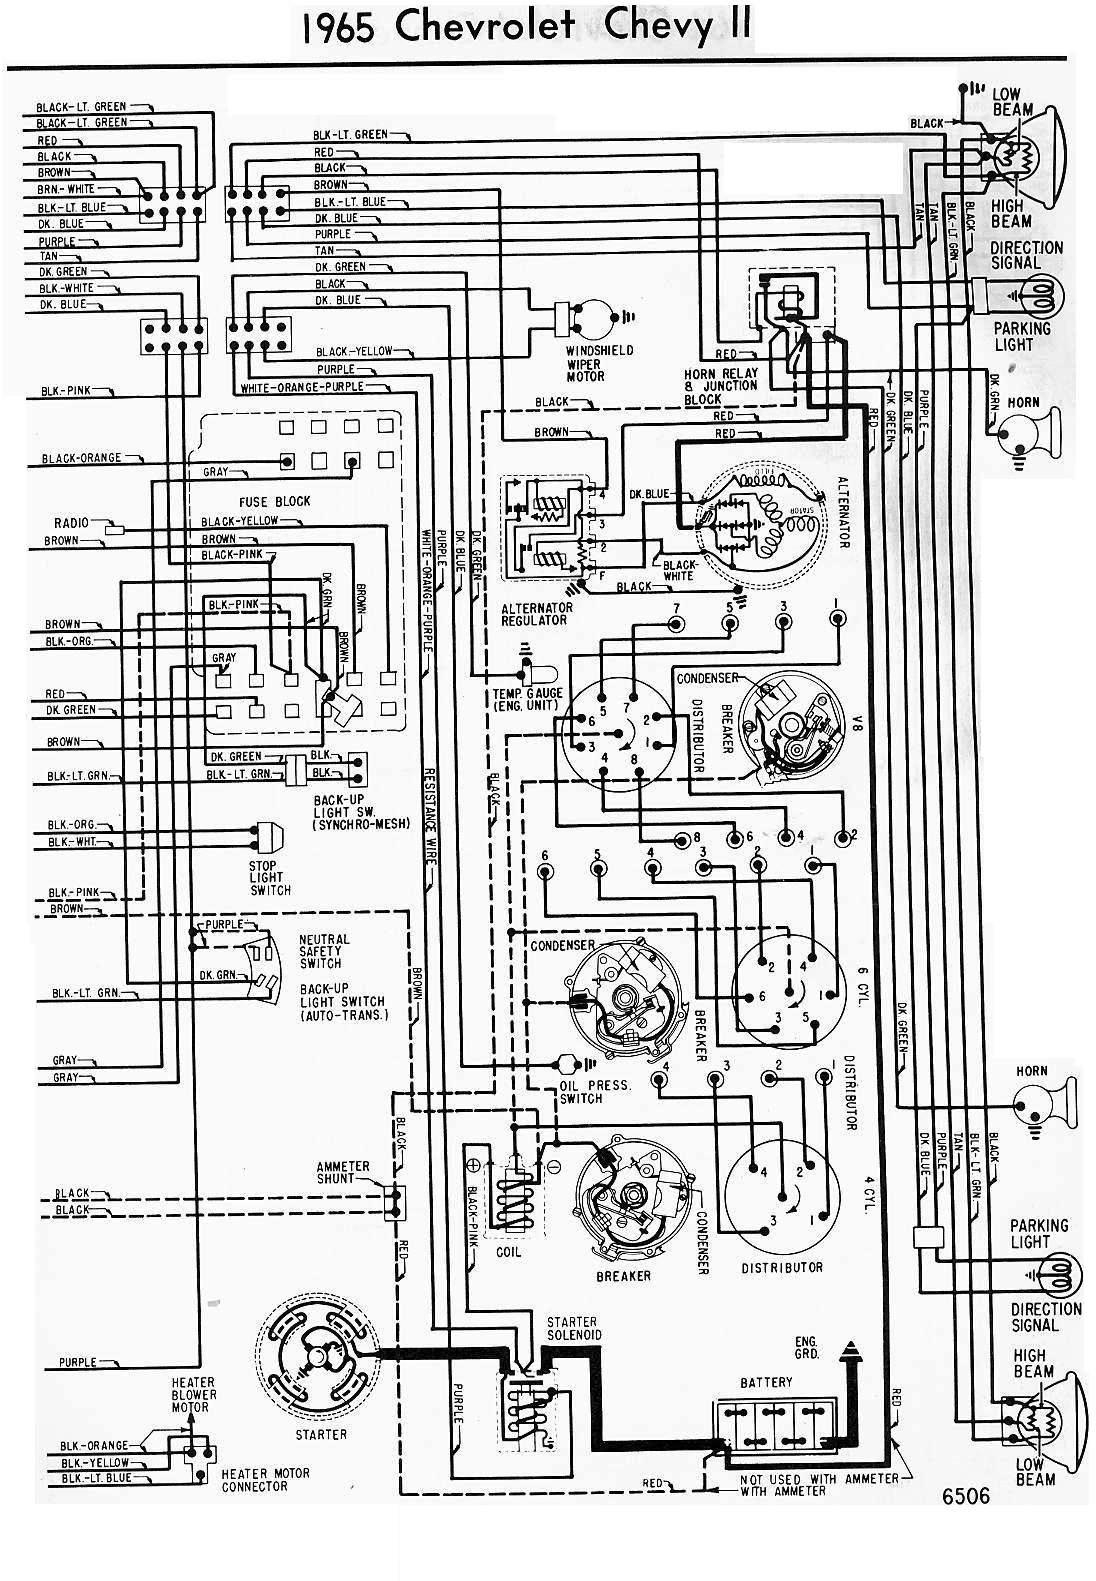 Oem Ignition Wiring With Guages Zpsasrtgewc further Ctsm also Wiring Roof   Platformlights as well Chevrolet Chevy Ii Wiring Diagram moreover Diag. on 1968 ford f100 wiring diagram